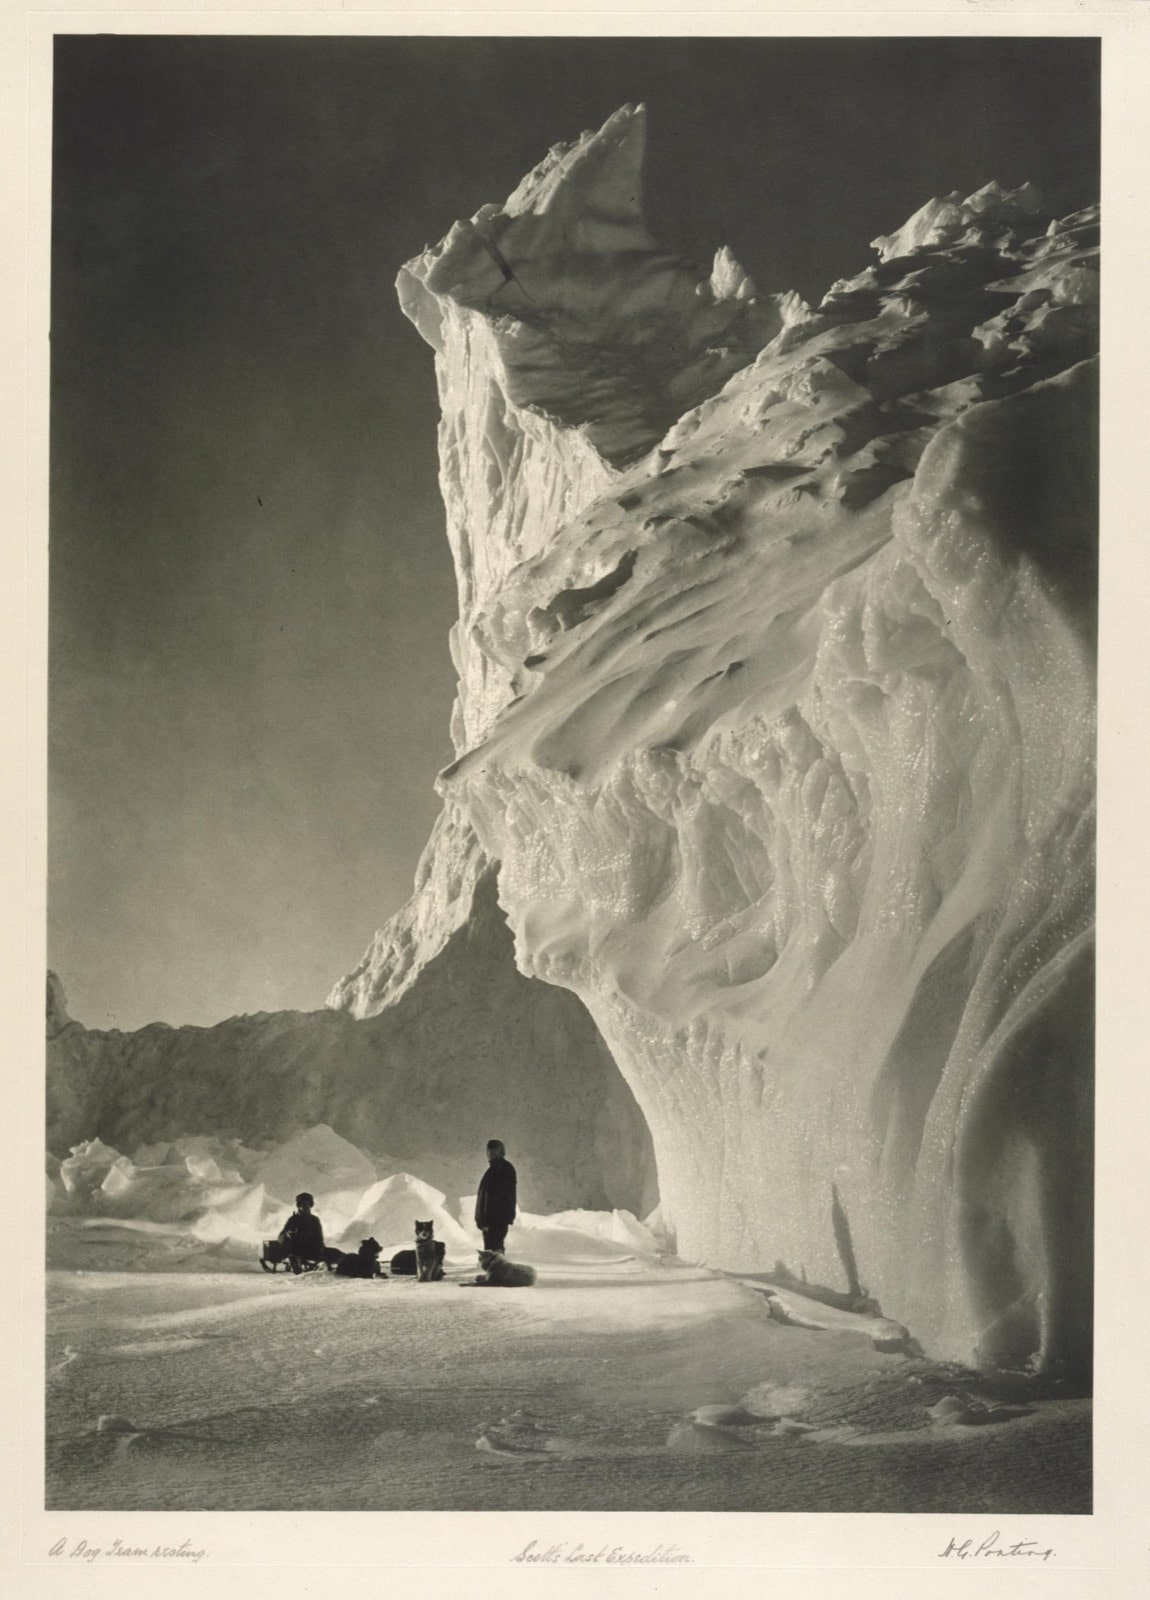 A dog team rests on the icy, mountainous terrain. Photo by Herbert G. Ponting/ © Victoria and Albert Museum, London